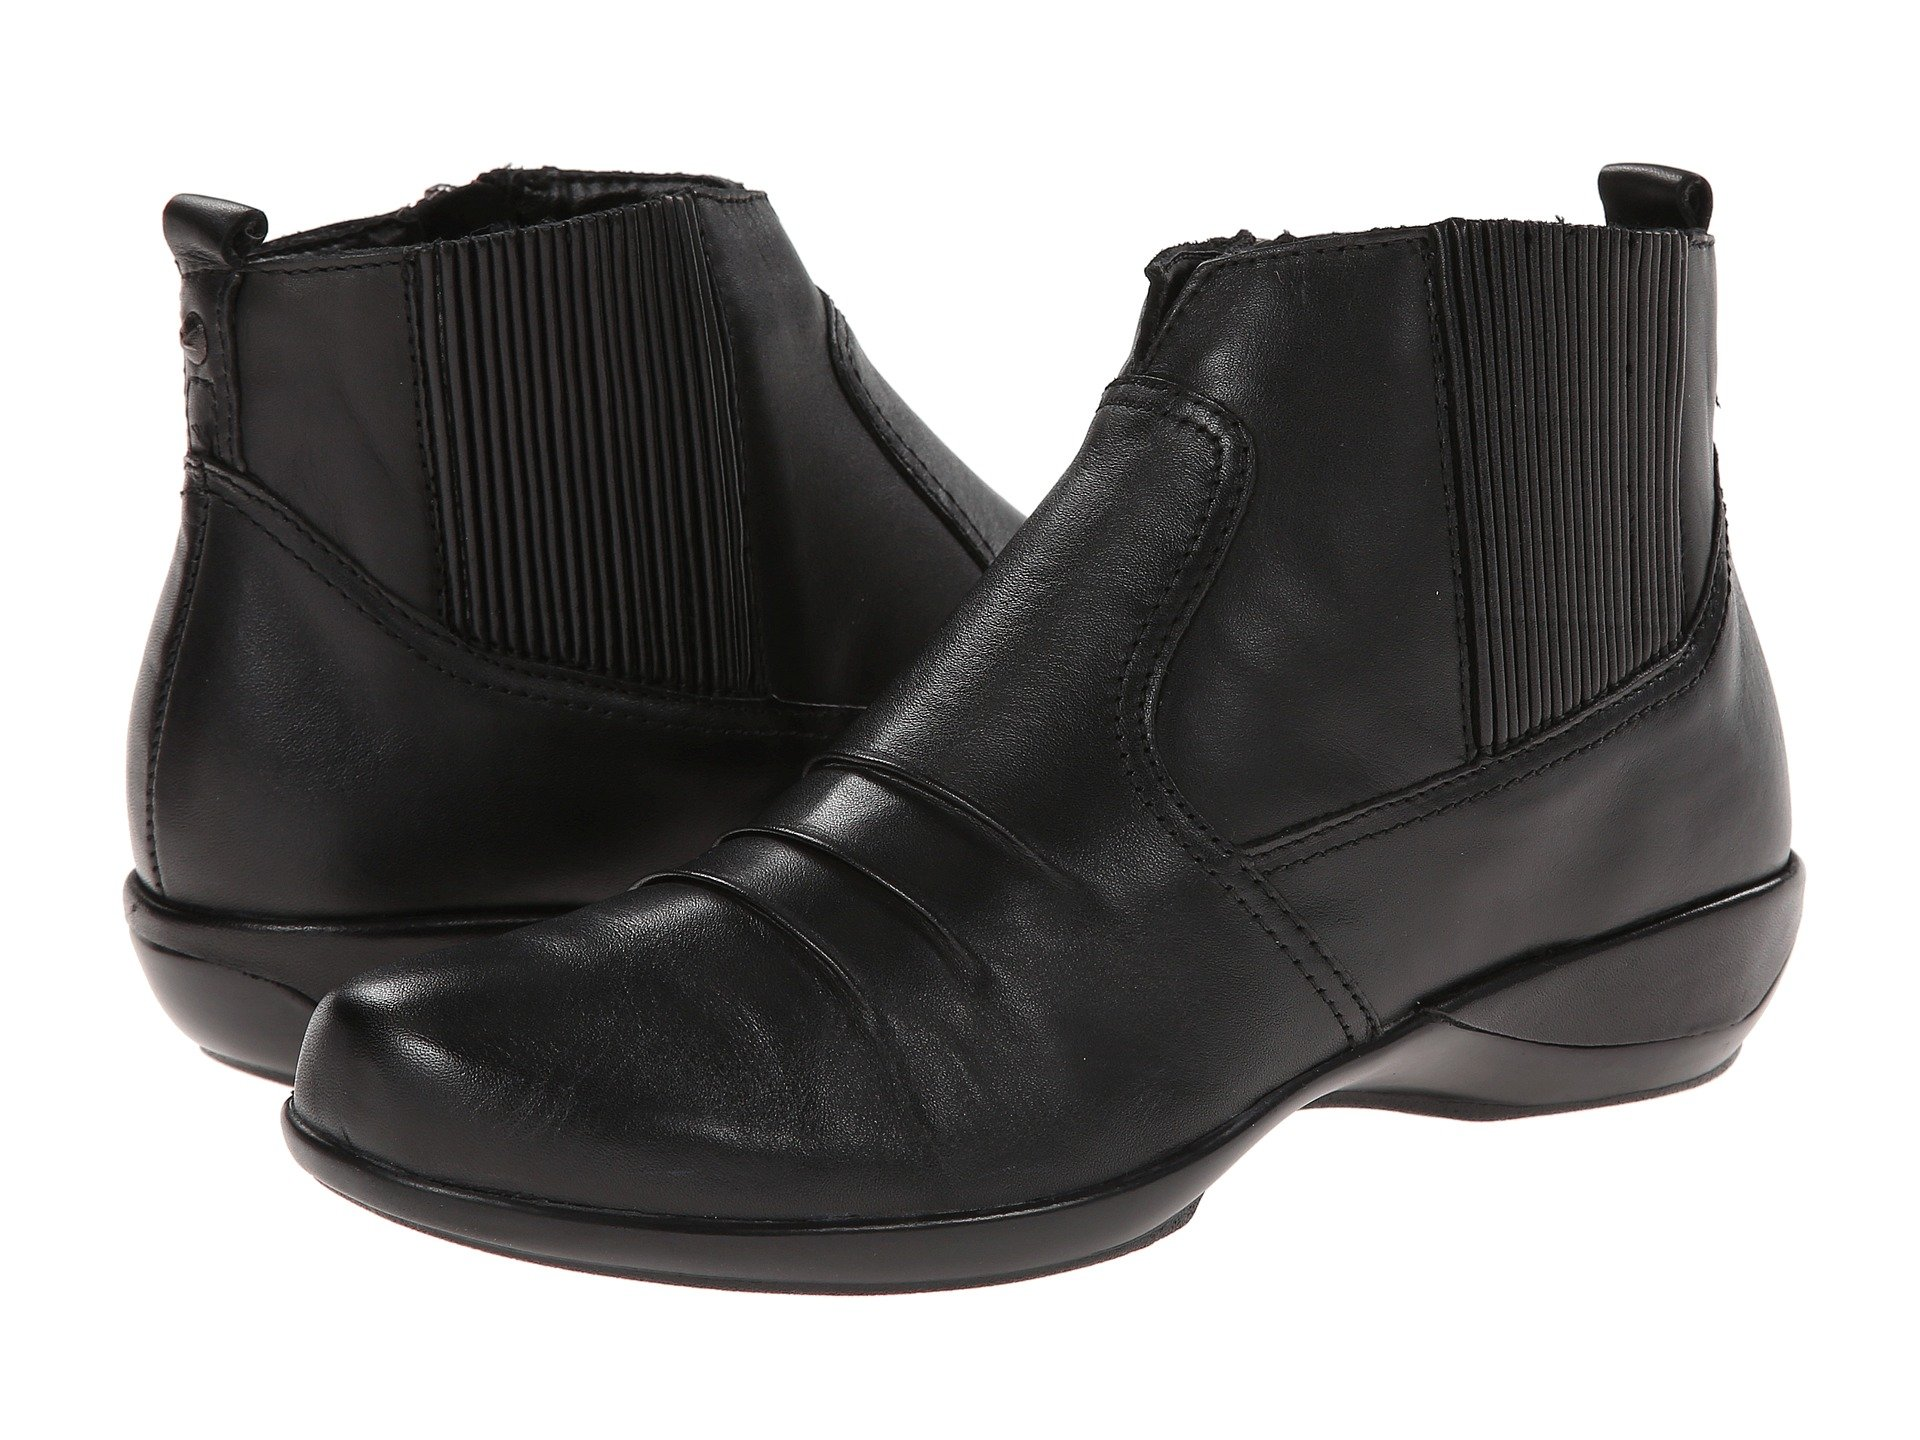 Aetrex Kailey Ankle Boot At Zappos Com